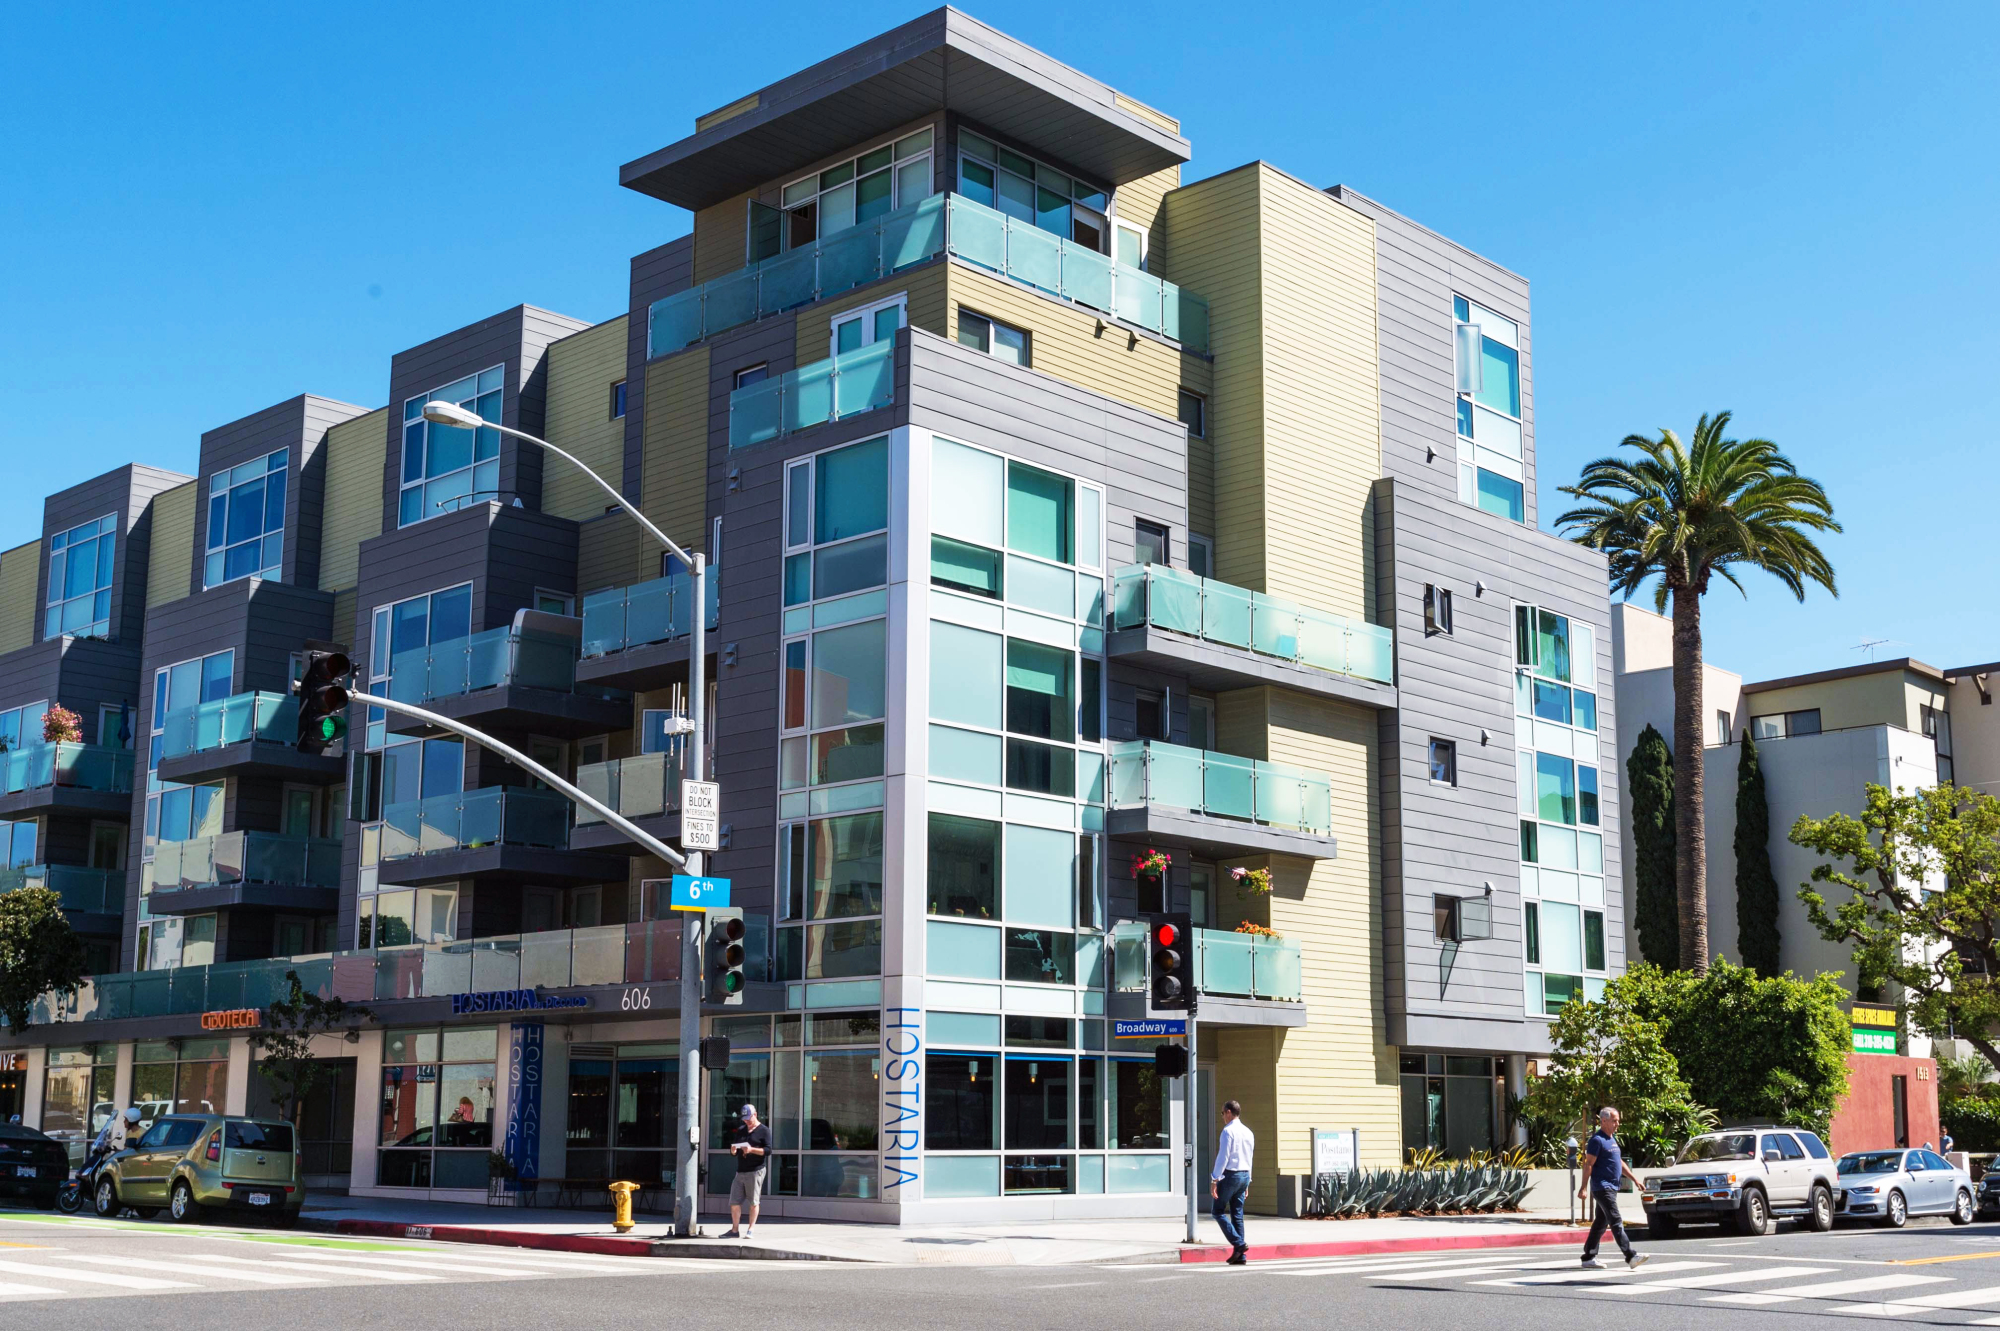 One of the new residential buildings in downtown Santa Monica. Photo by Steve Hymon//Metro.